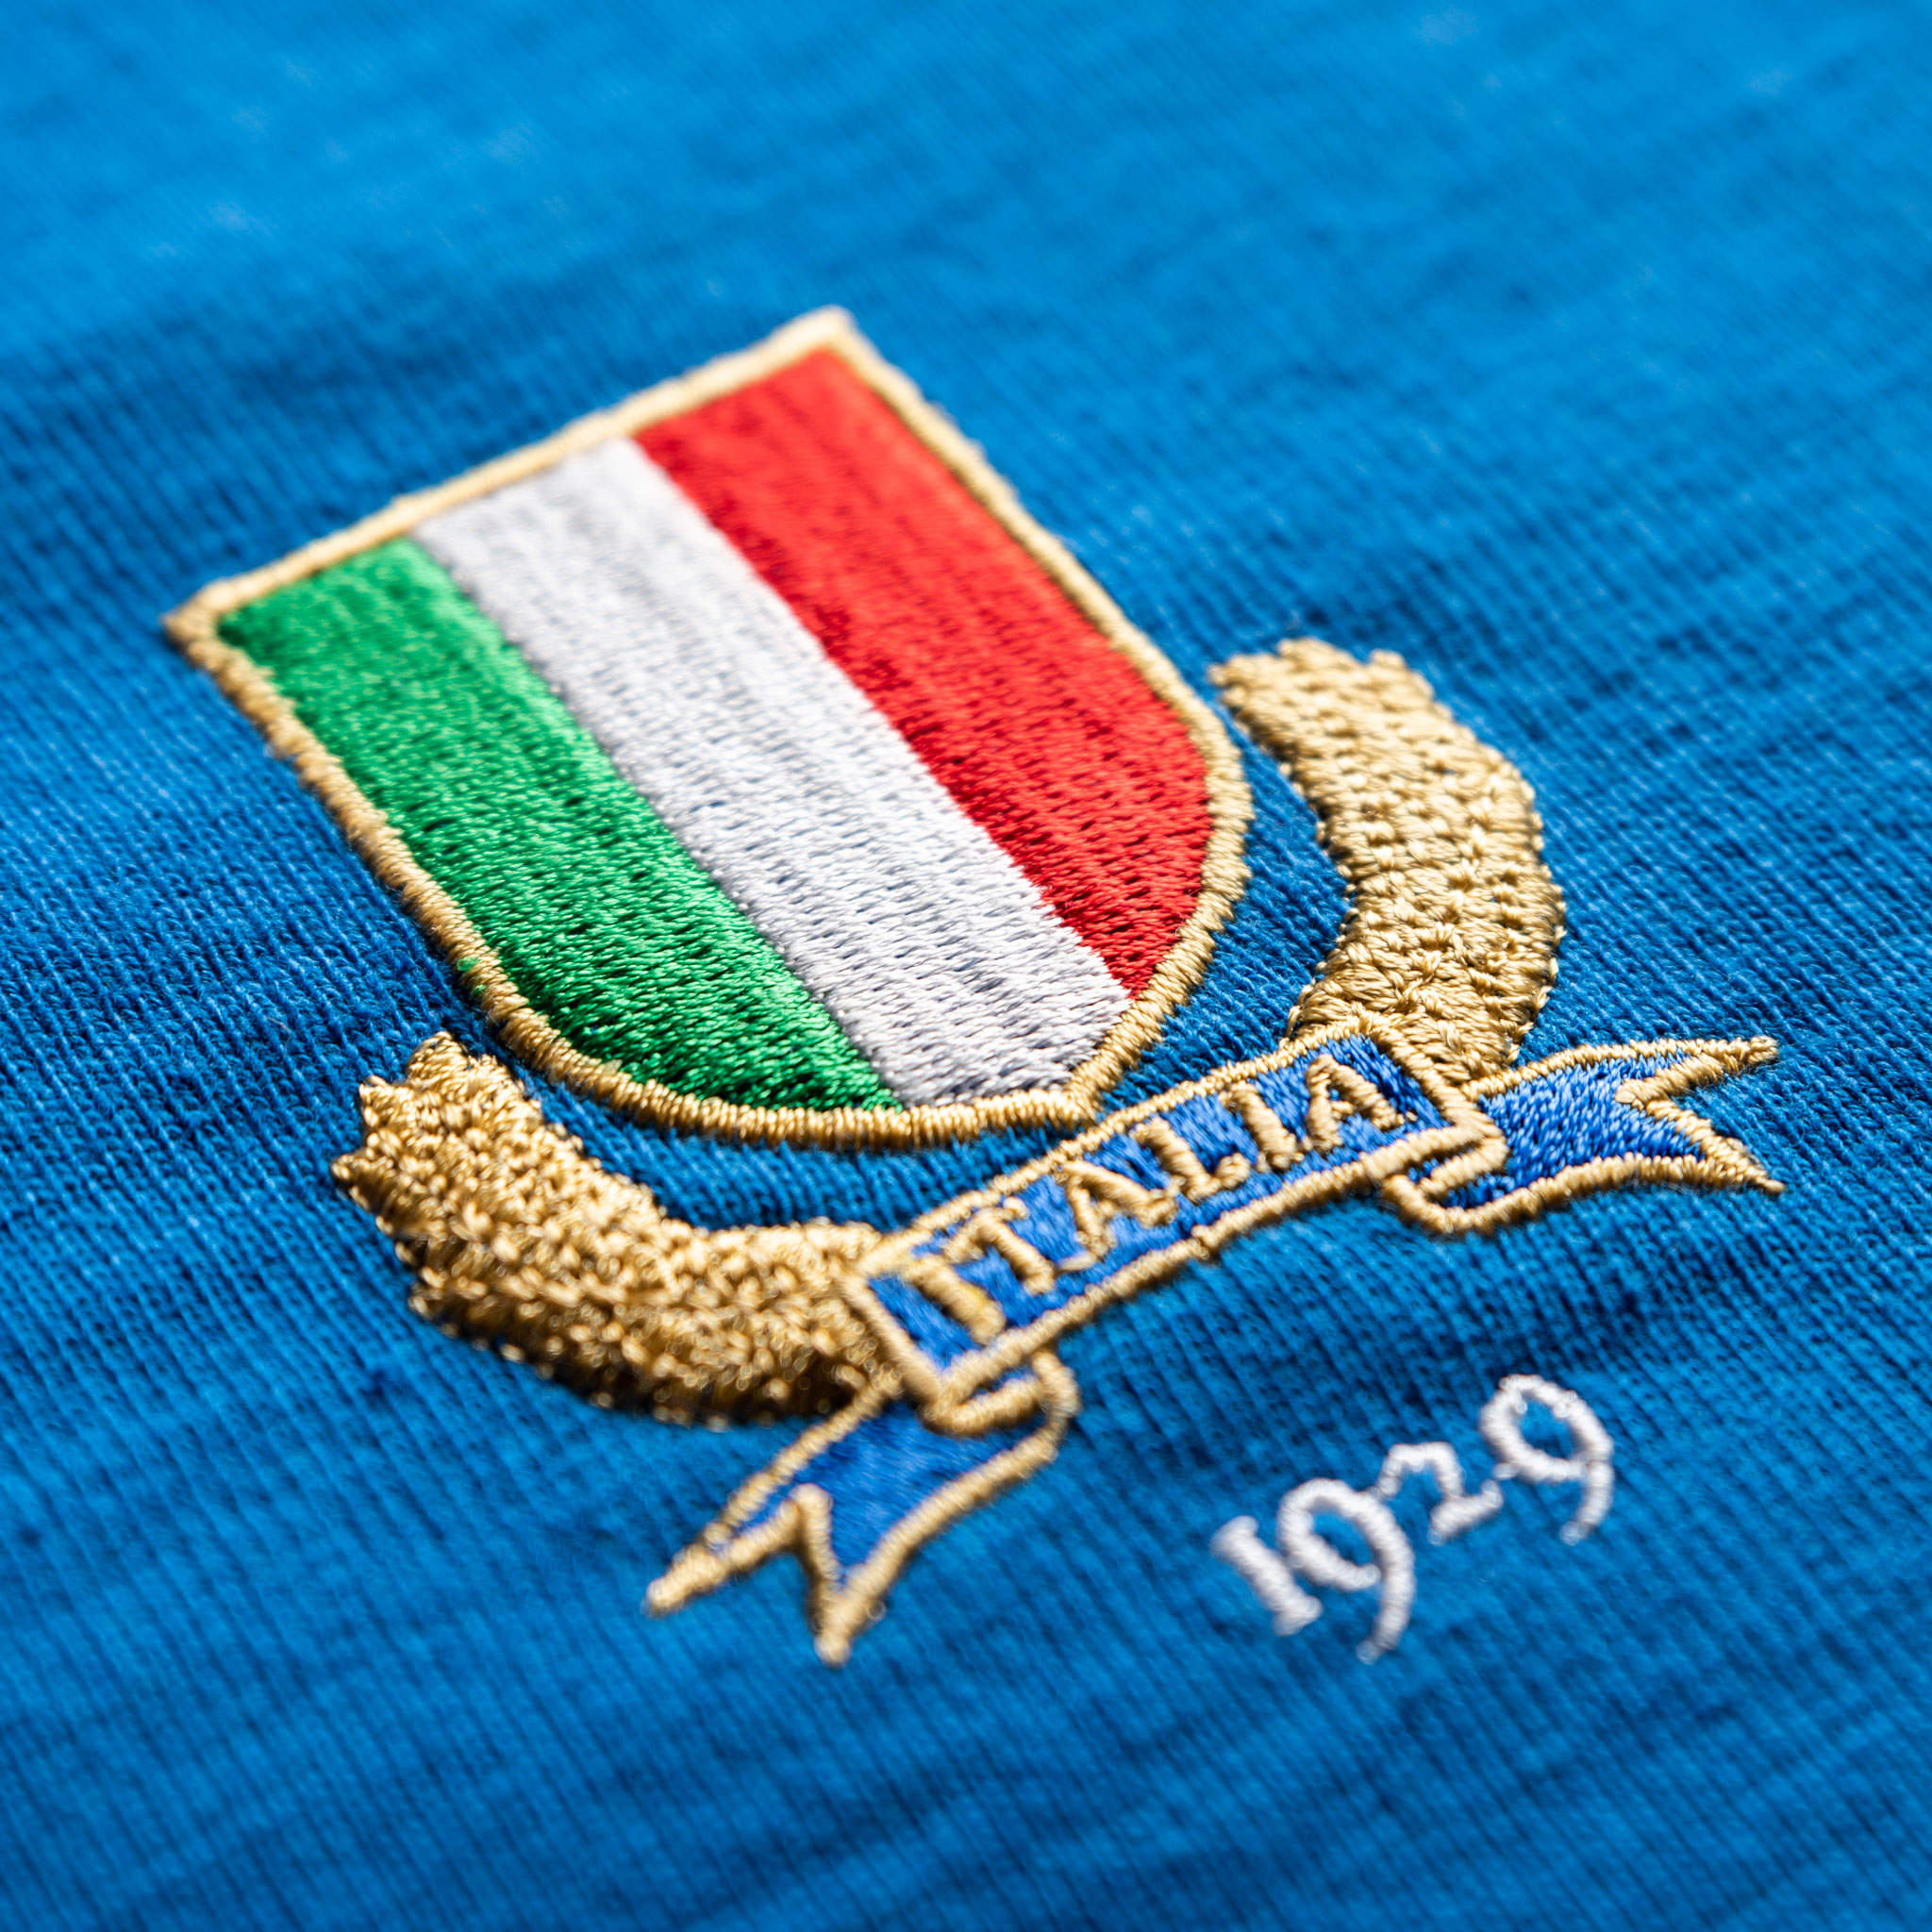 Italy 1929 Vintage Rugby Shirt_logo